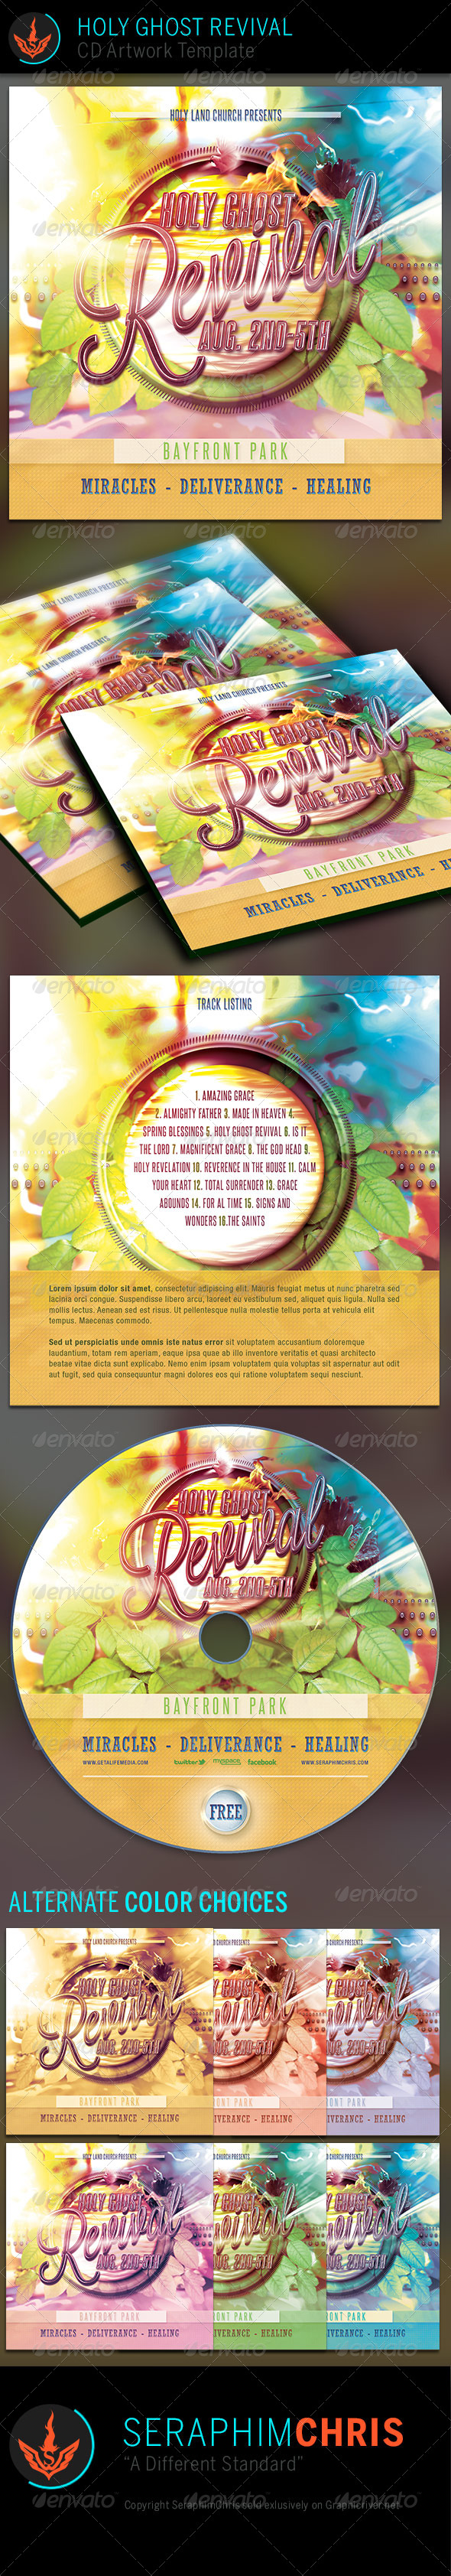 GraphicRiver Holy Ghost Revival CD Artwork Template 6980058